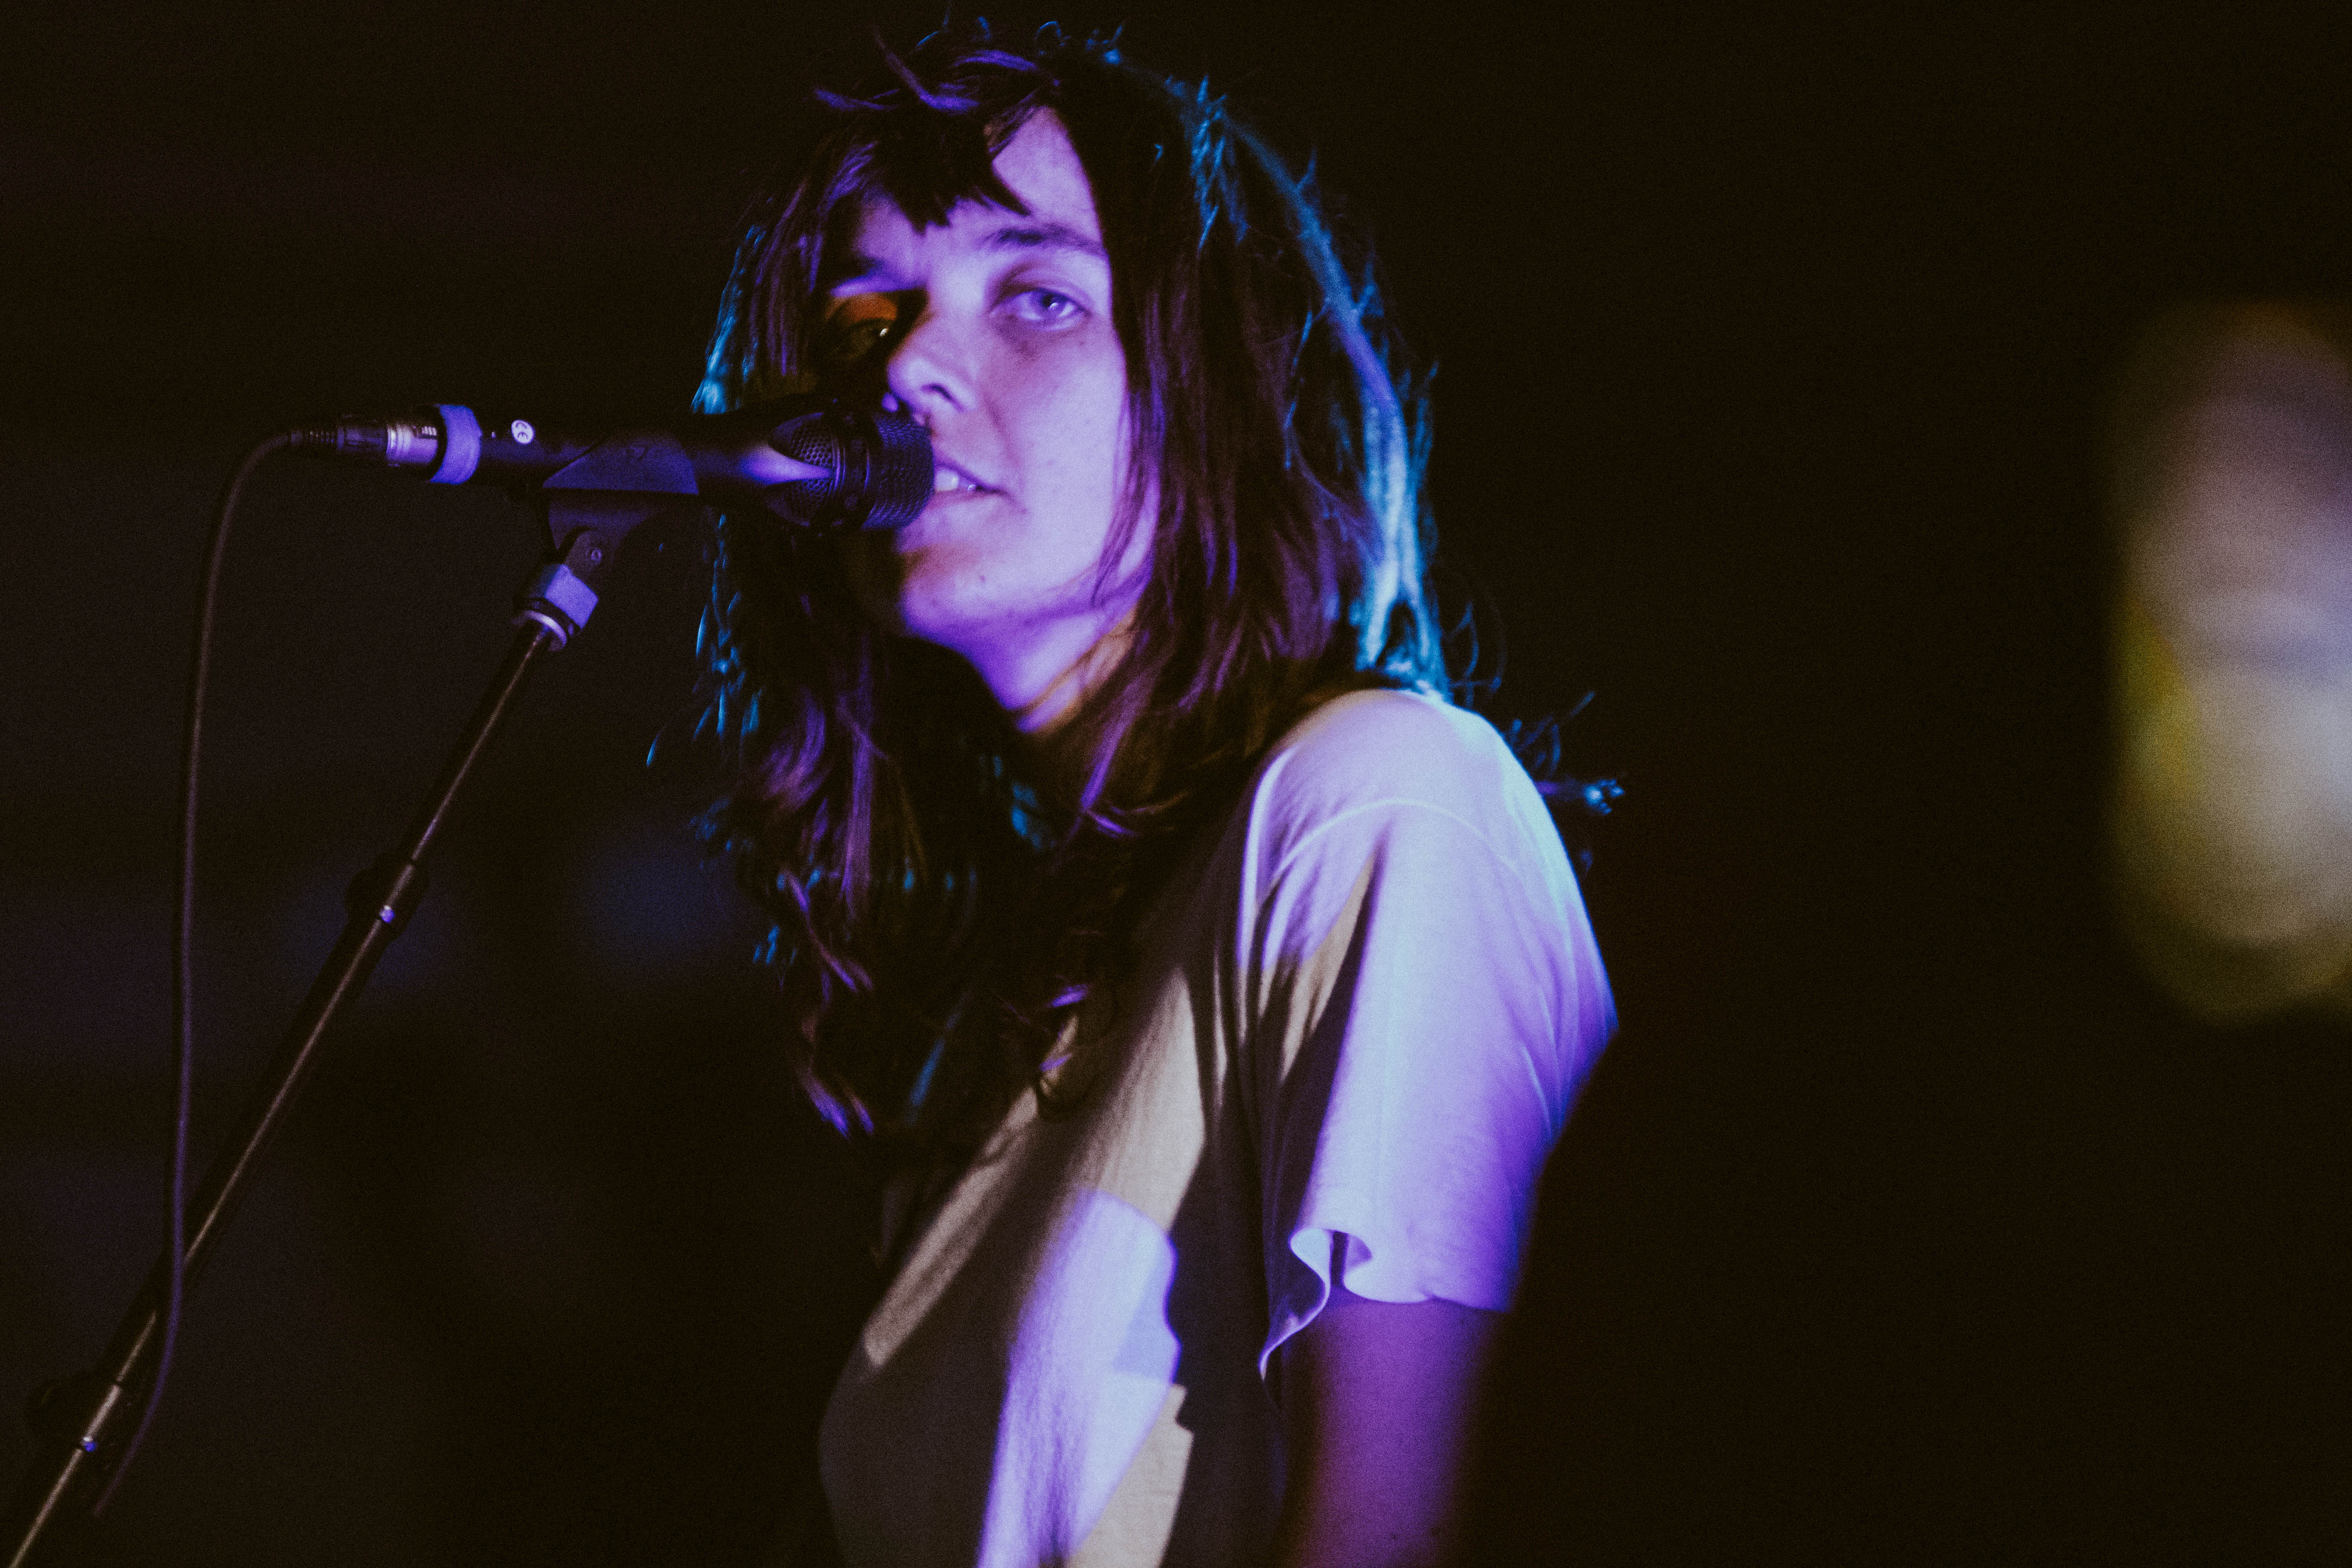 Courtney Barnett plays a unique show in Chicago